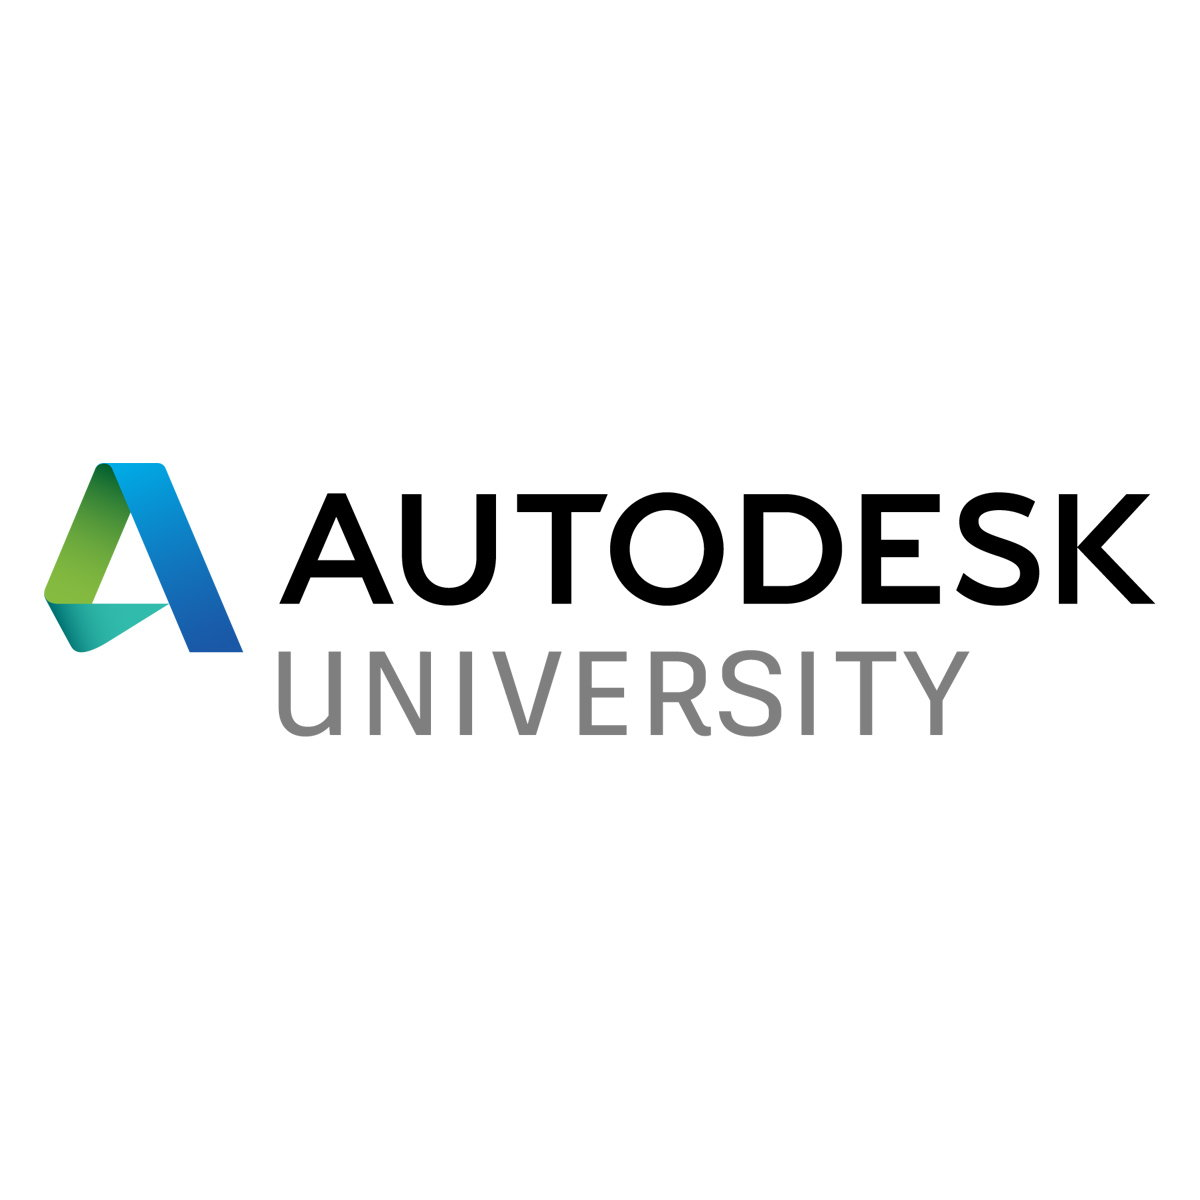 Autodesk Issues Call for AU 2020 Proposals